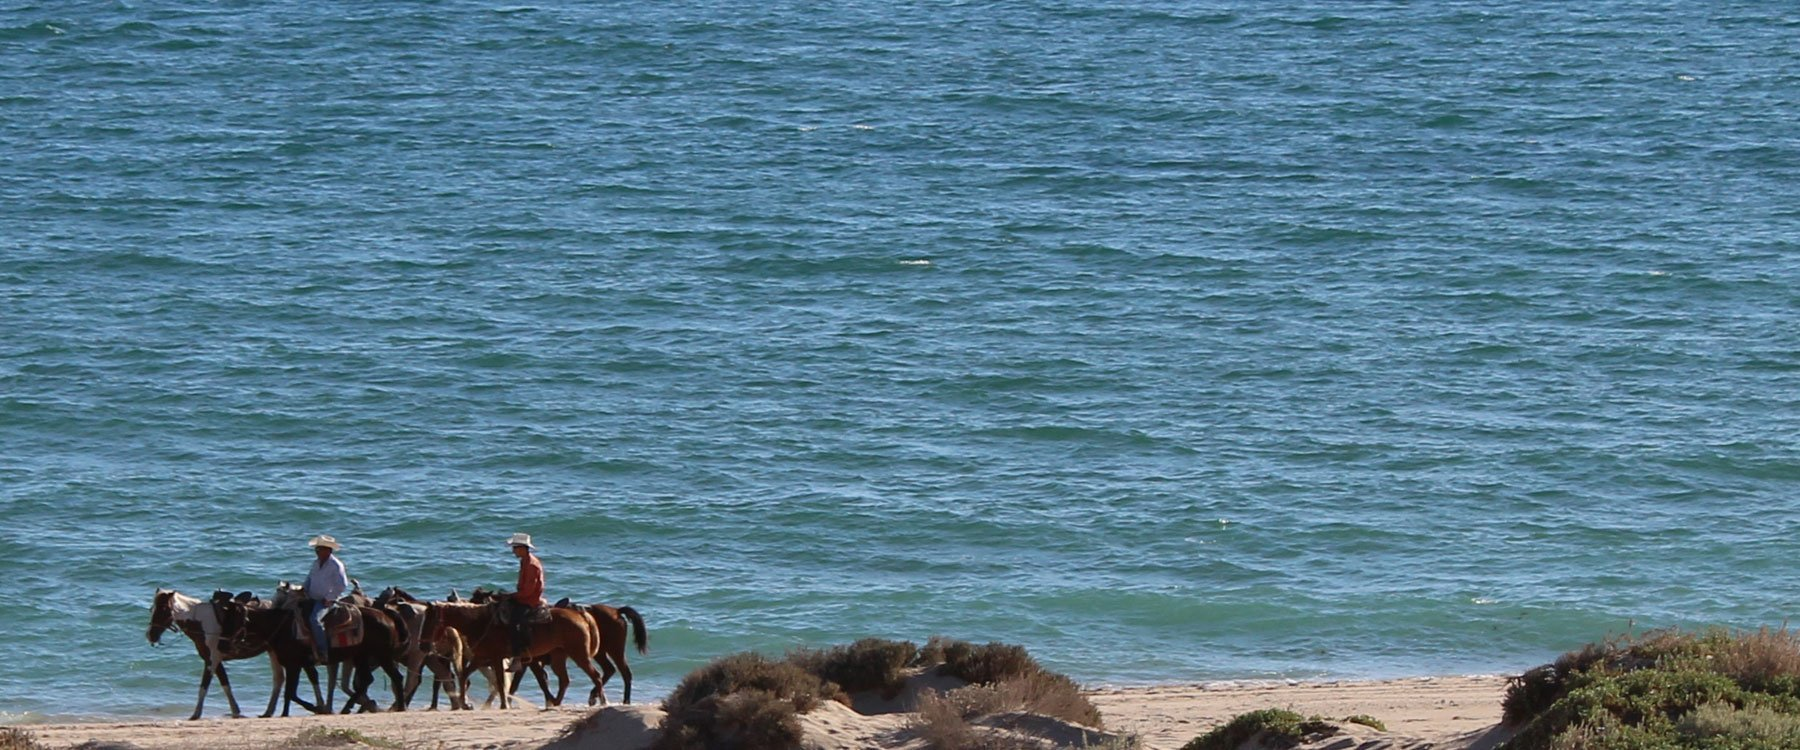 Horseback riding in Puerto Penasco (Rocky Point Mexico) is definetely available.